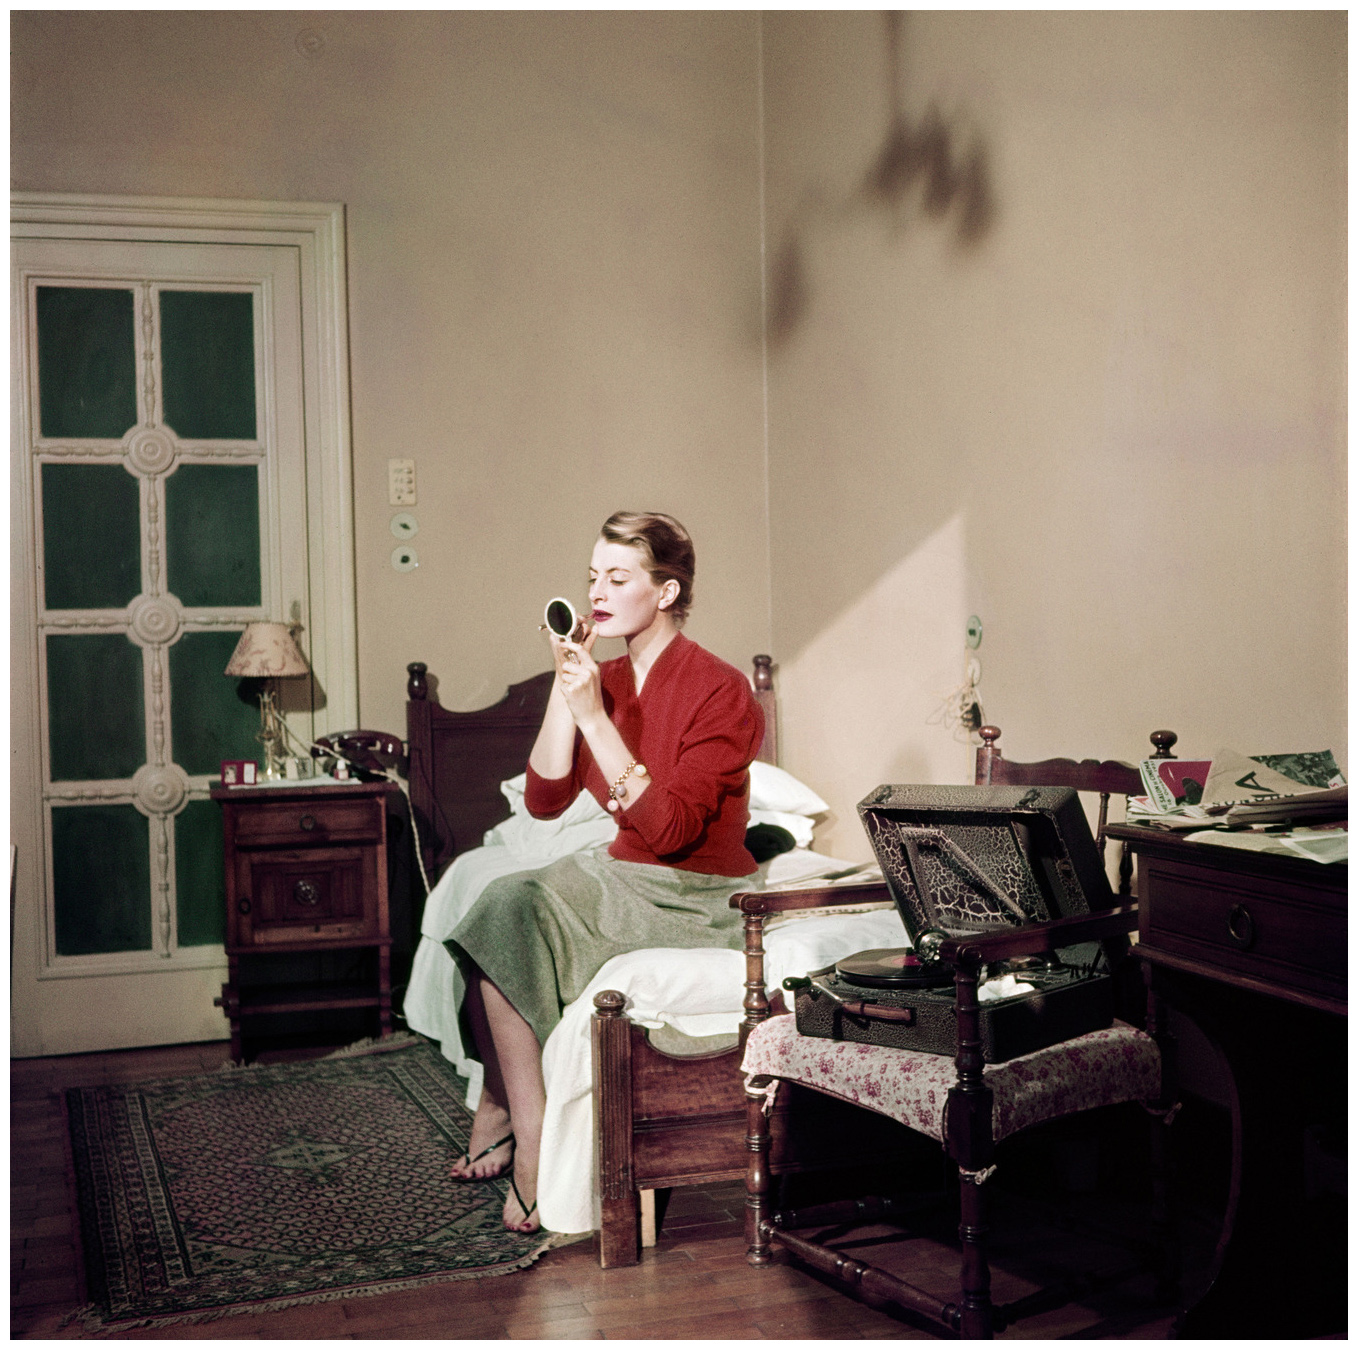 robert-capa-capucine-french-model-and-actress-in-her-hotel-room-rome-august-1951-c2a9-robert-capainternational-center-of-photographymagnum-photos